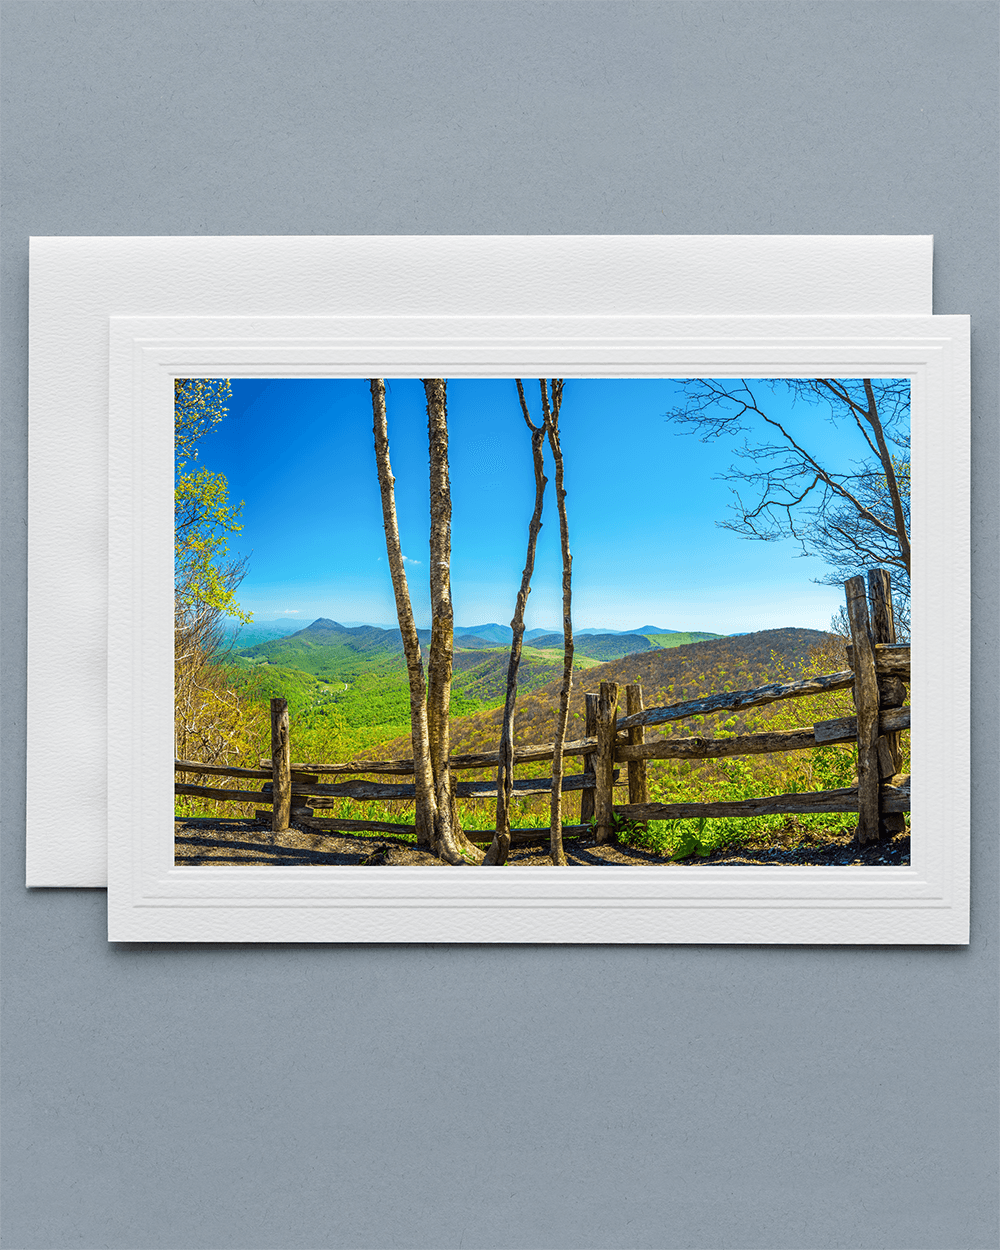 Send a lovely Greeting Card with a real photograph of Elk Knob State Park - All Greeting Cards are handmade by us in the U.S.A.